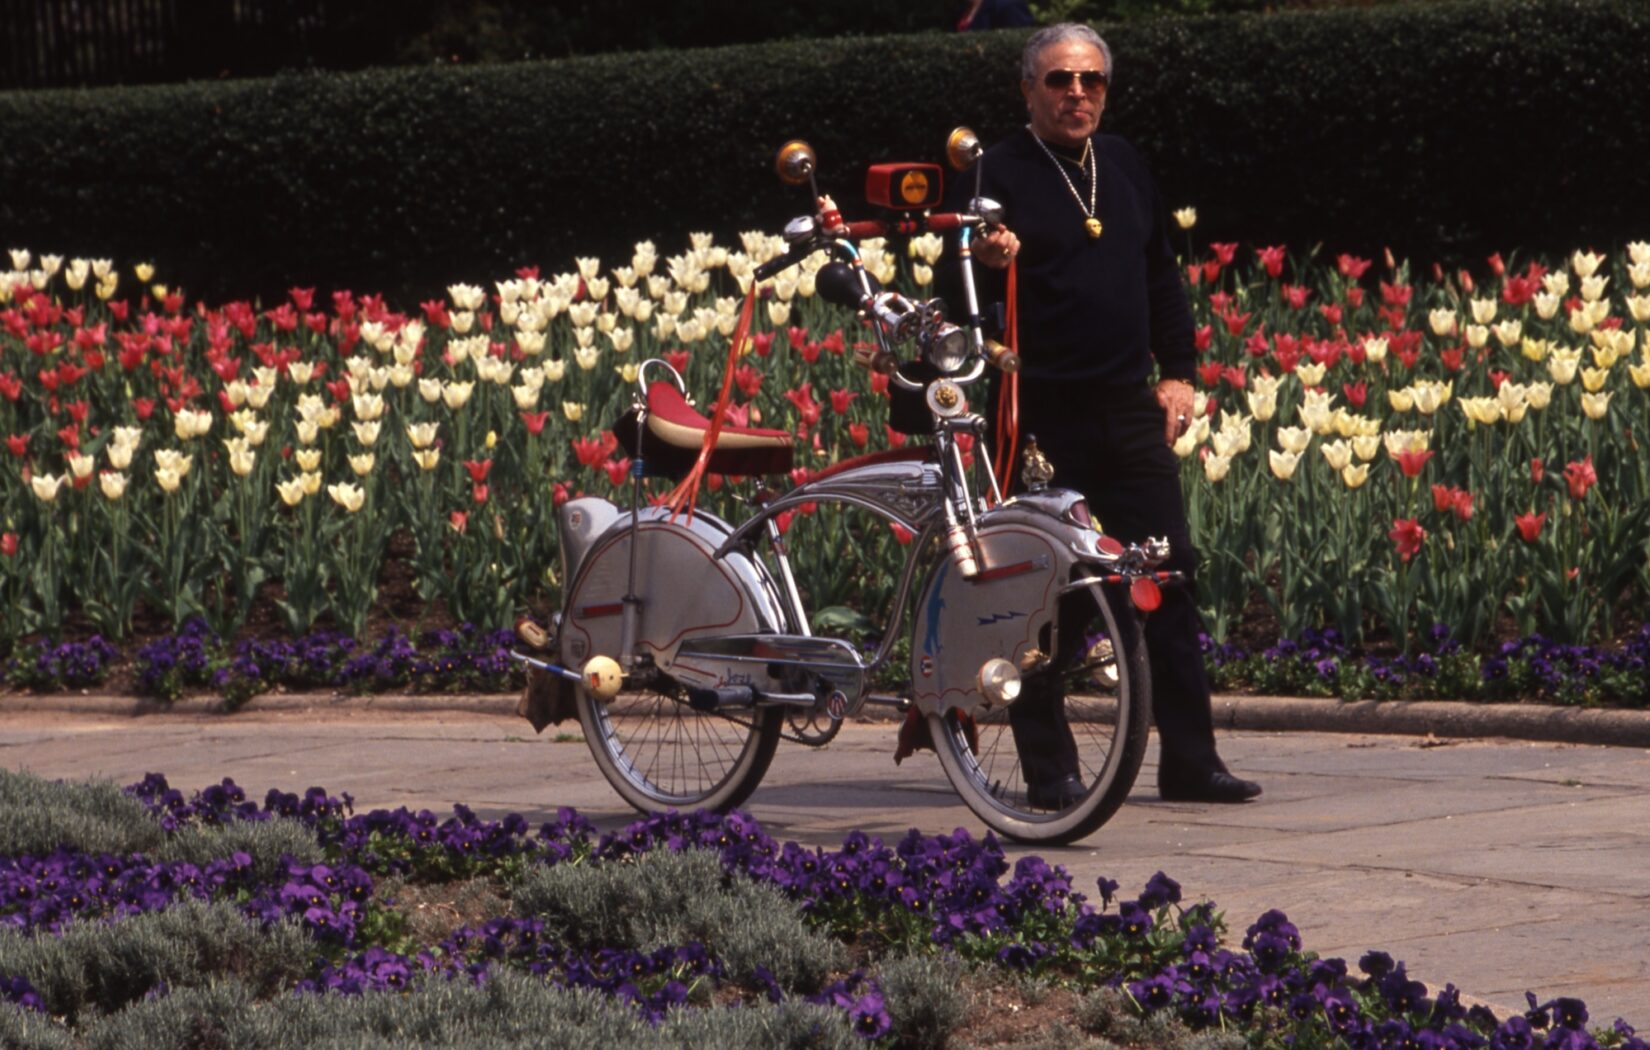 A man dressed in black walks his bicycle in the Garden. The bicycle is tricked out with a banana seat, high chrome handlebars accentuated with streamers, mirrors and an old-fashioned horn.